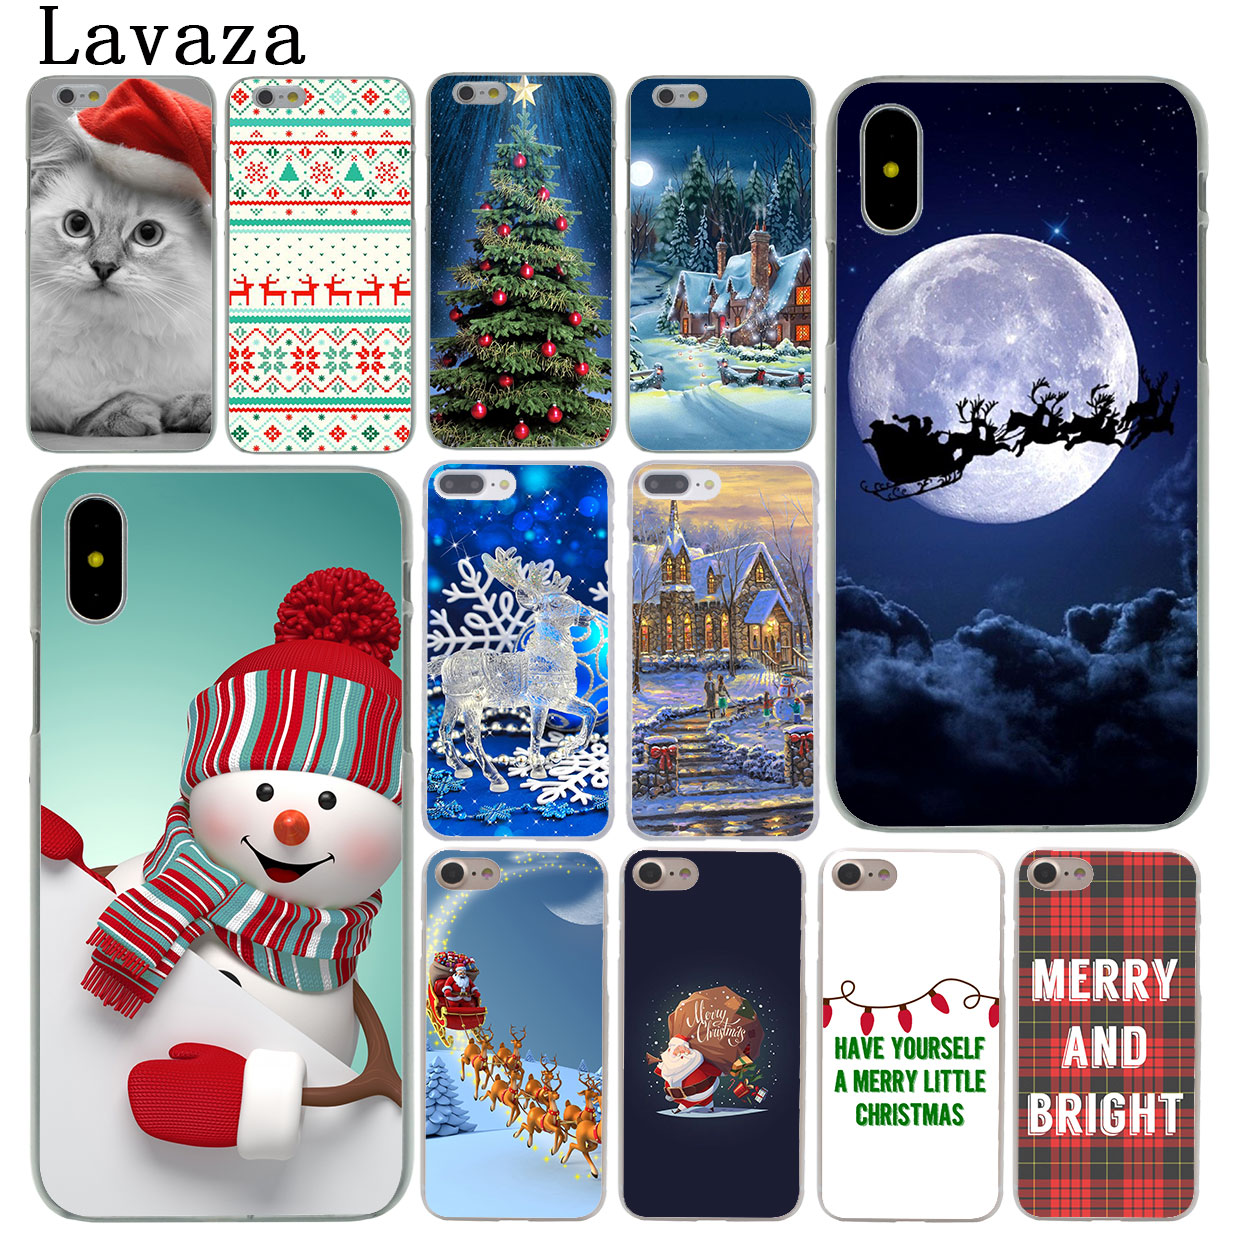 3248e64e2db8fc Lavaza Merry Christmas happy New Year Cat Phone Case for Apple iPhone XR XS  Max X 8 7 6 6S Plus 5 5S SE 5C 4S 10 Cover Cases